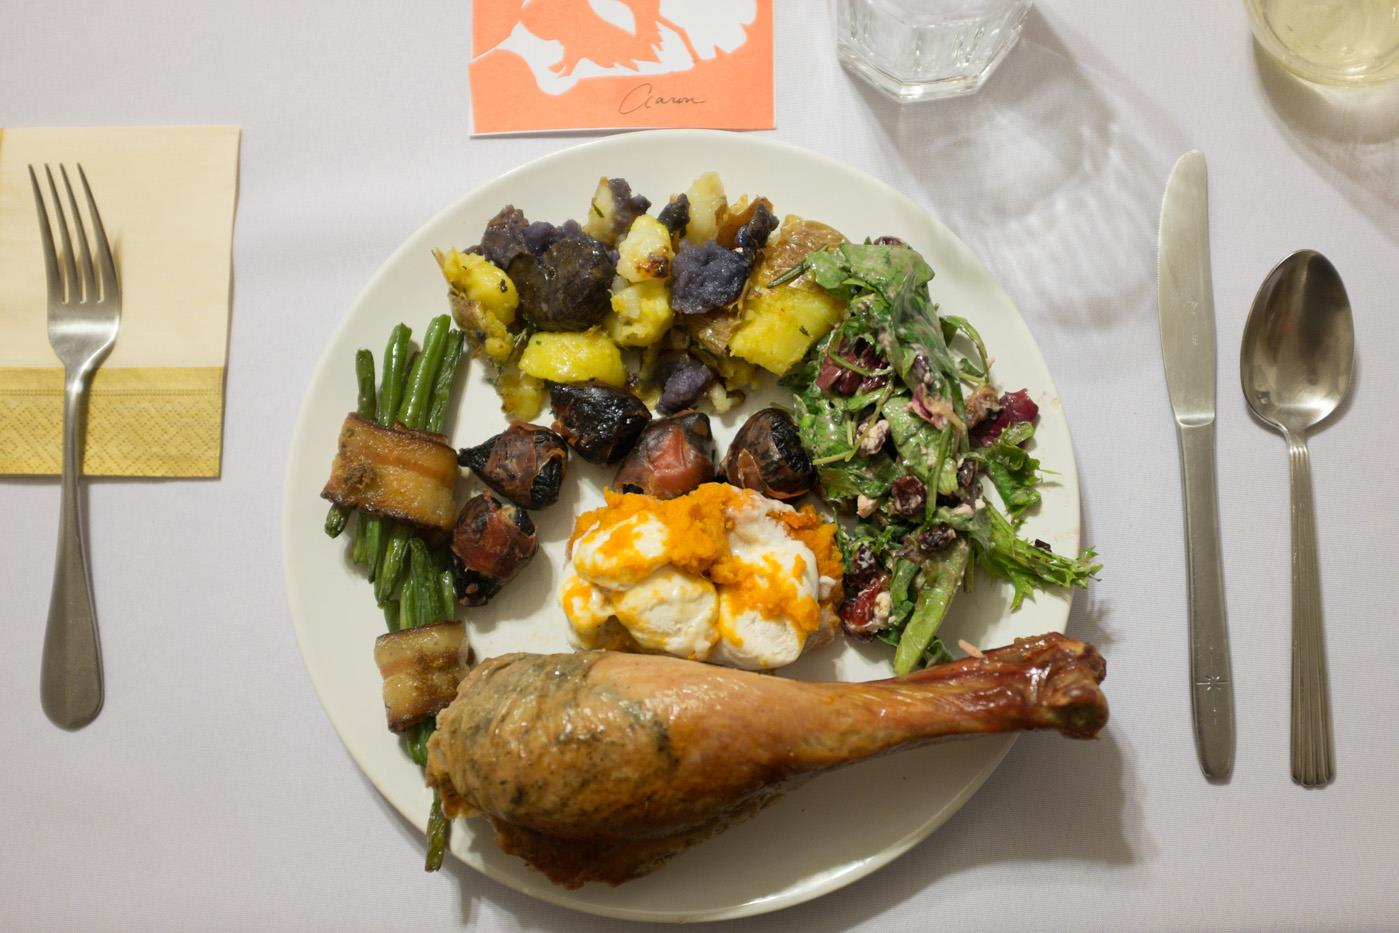 Last year's Thanksgiving meal shared with college friends!